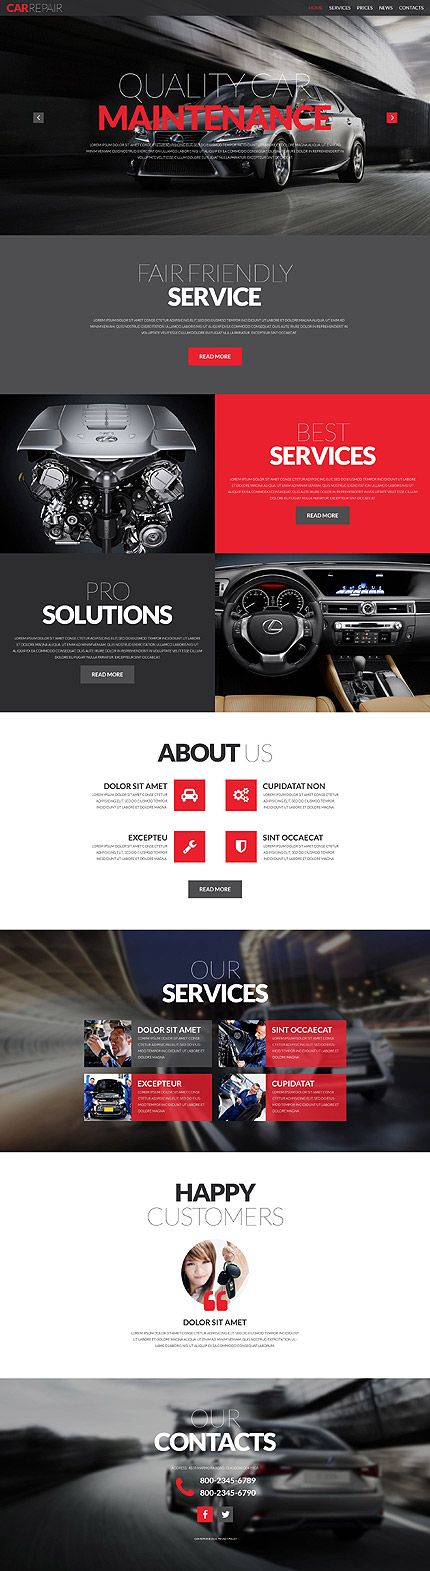 Template 51928 - Car Repair  Responsive Website Template